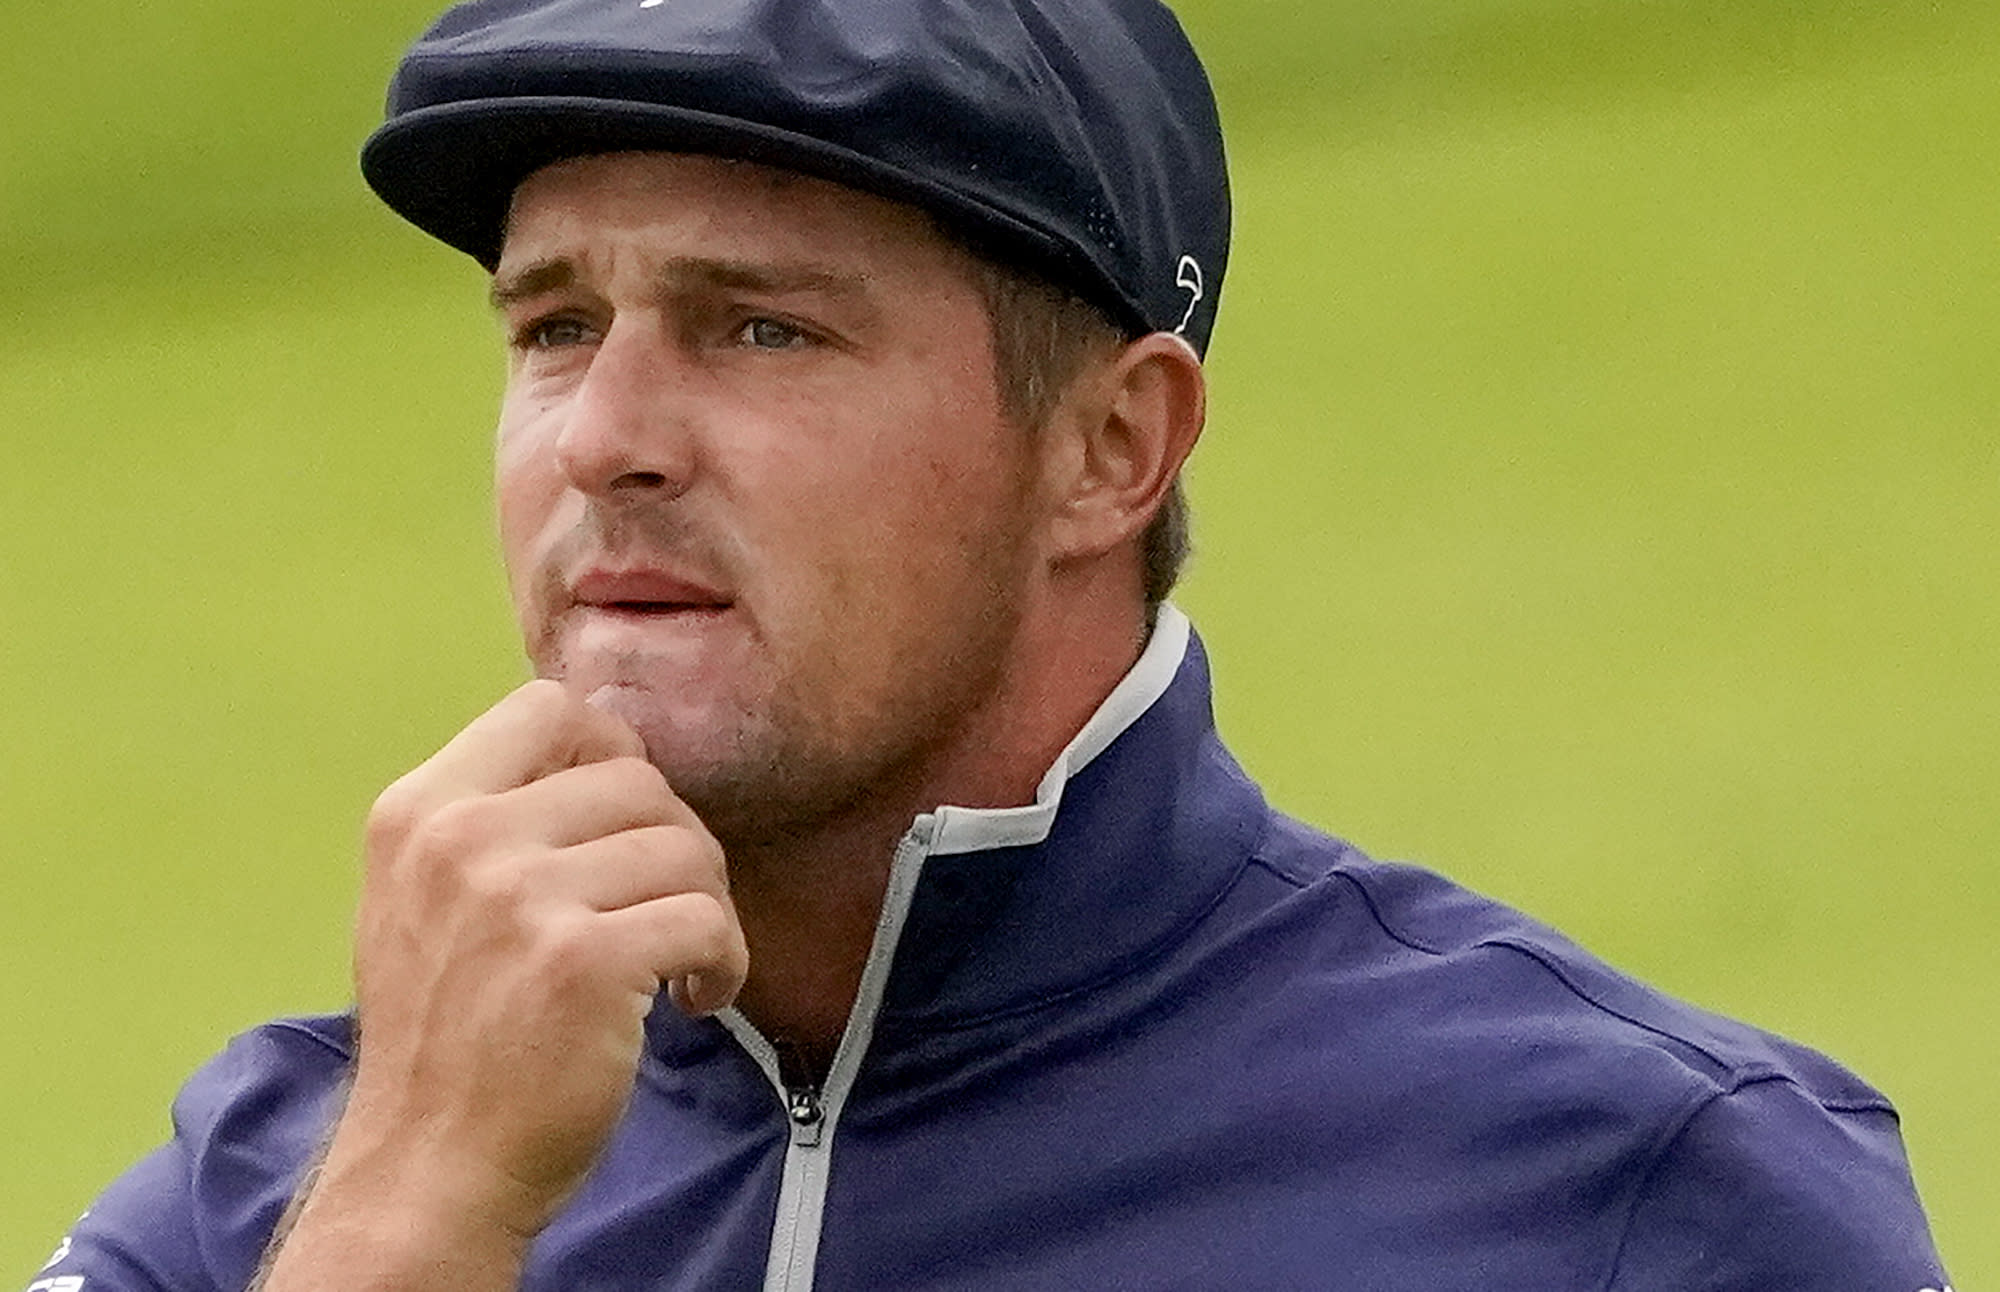 Bryson DeChambeau, of the United States, watches his shot off the 12th fairway during the second round of the US Open Golf Championship, Friday, Sept. 18, 2020, in Mamaroneck, N.Y. (AP Photo/Charles Krupa)